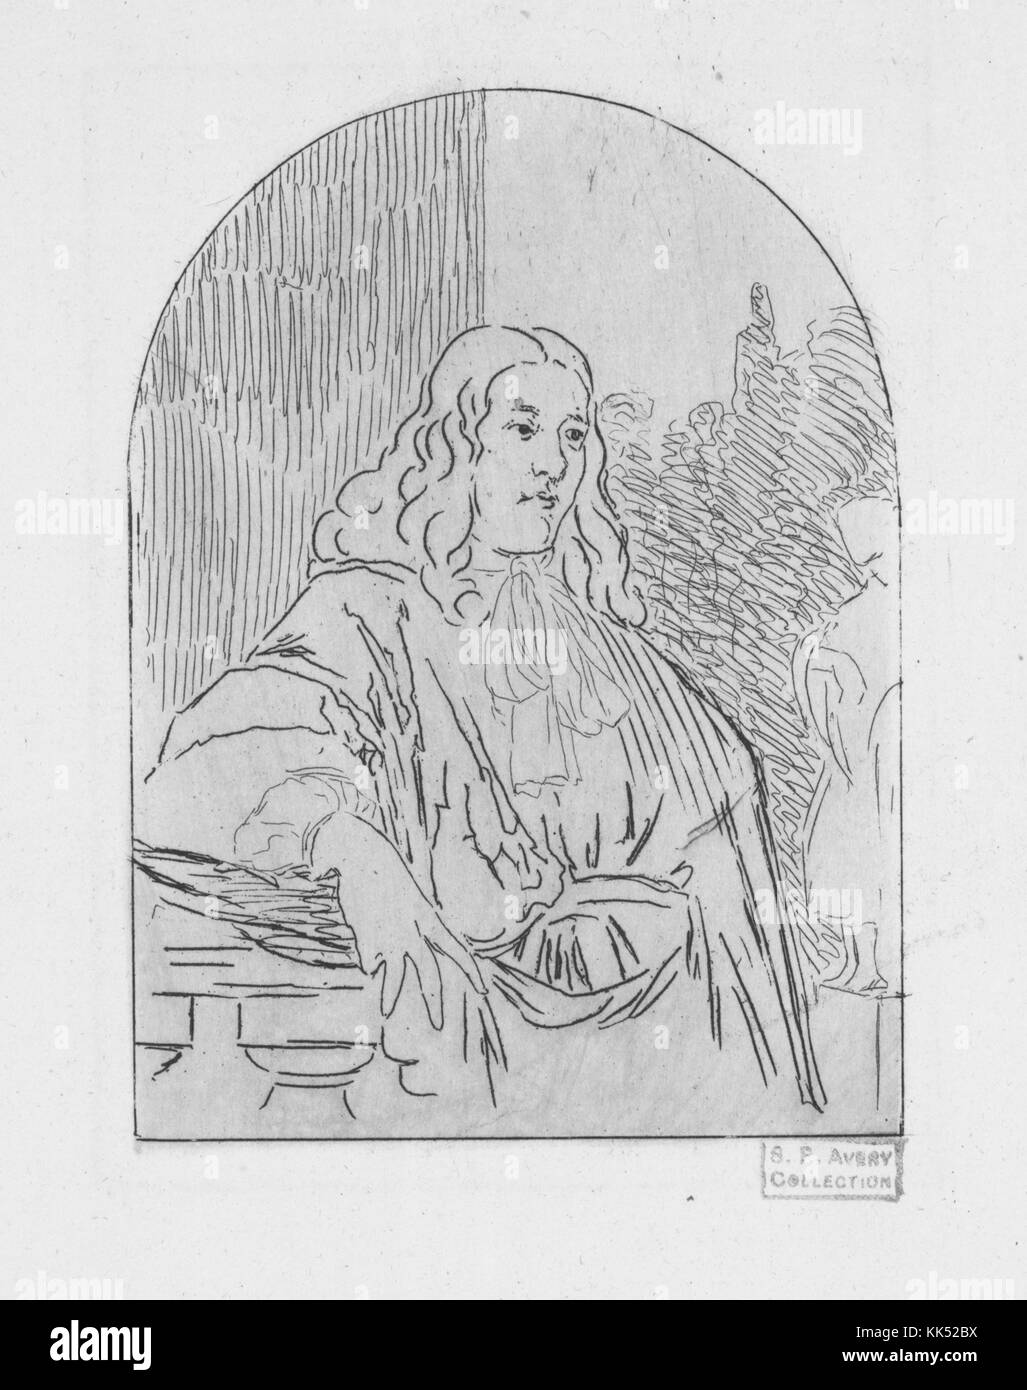 An etching titled Portrait d'un magistrat which translates from French to 'Portrait of a Magistrate', - Stock Image